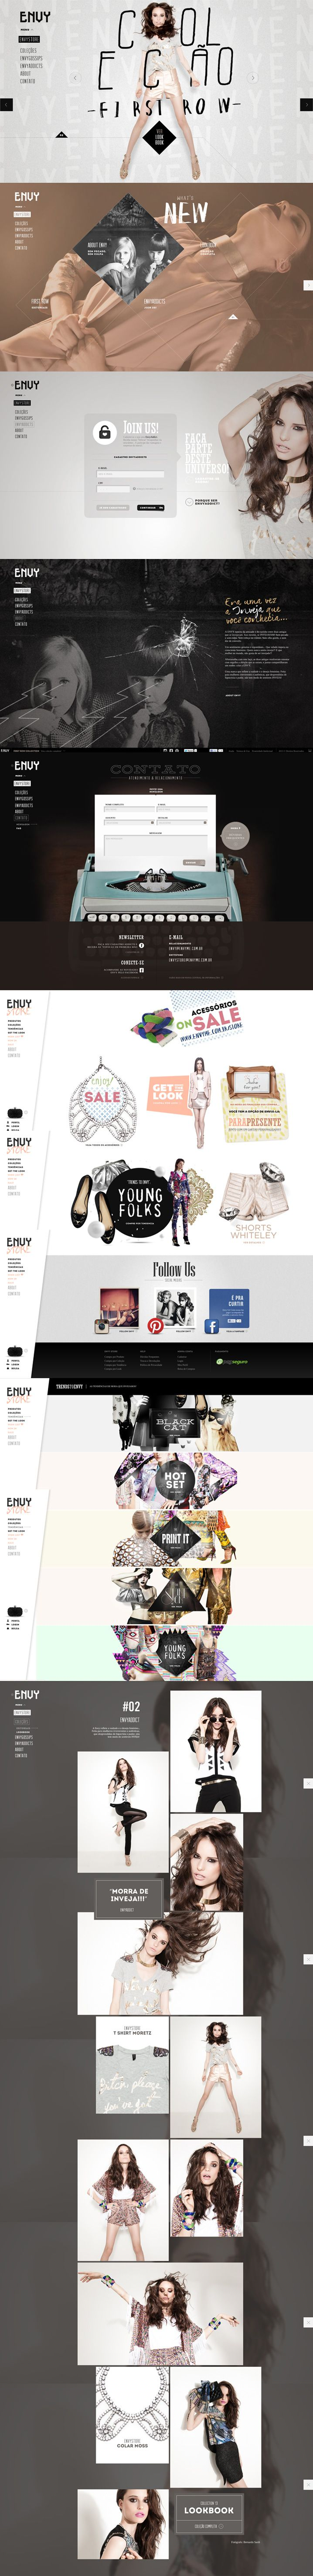 25 Trendy Web Designs For Your Inspiration Web Design Inspiration Web Development Design Web Design Awards